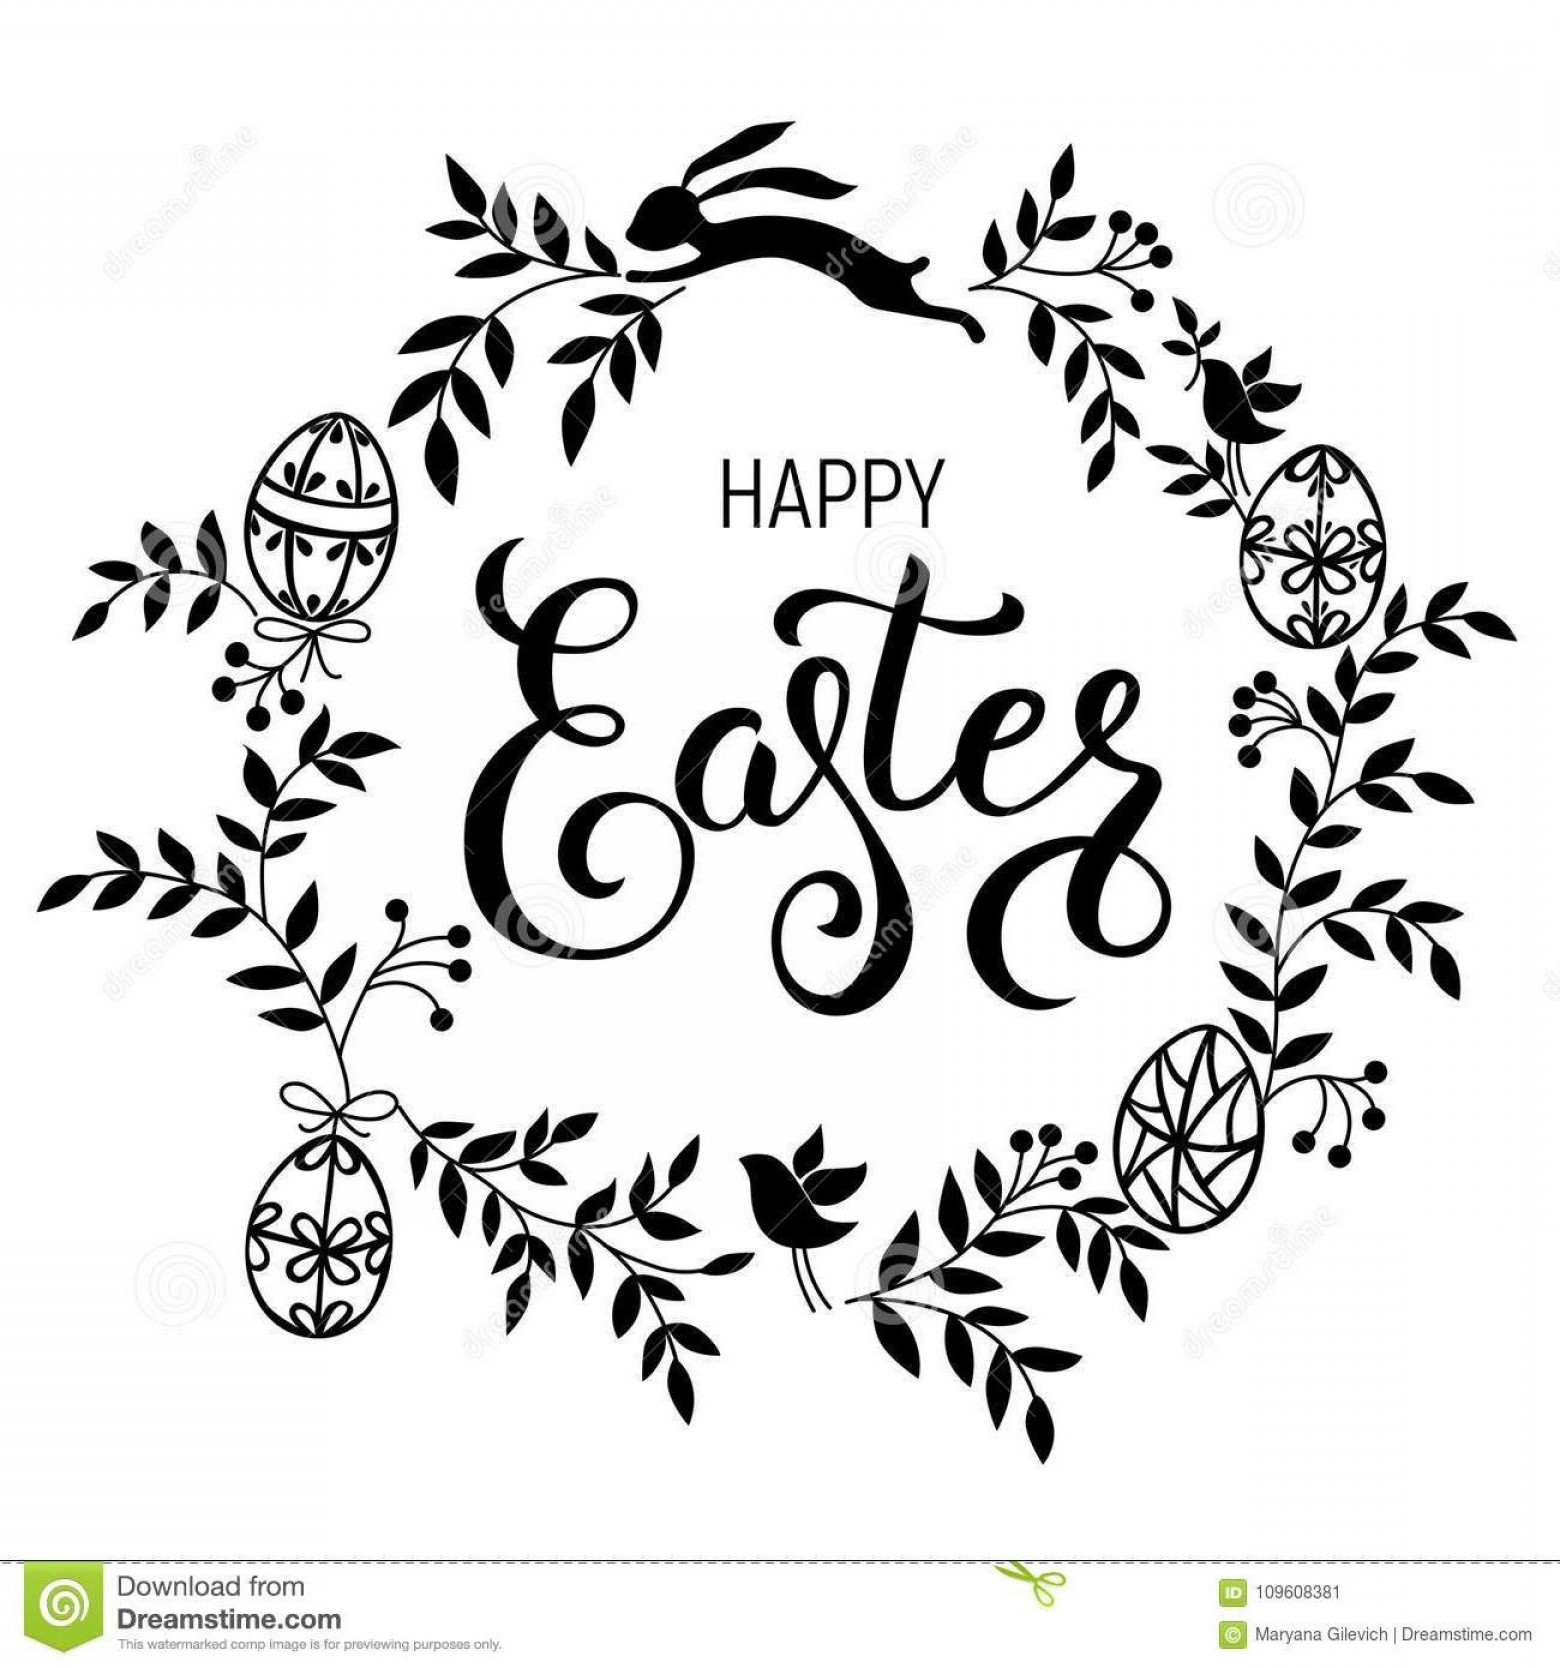 Religious Easter Vector Files: Top Happy Easter Clip Art Black And White File Free